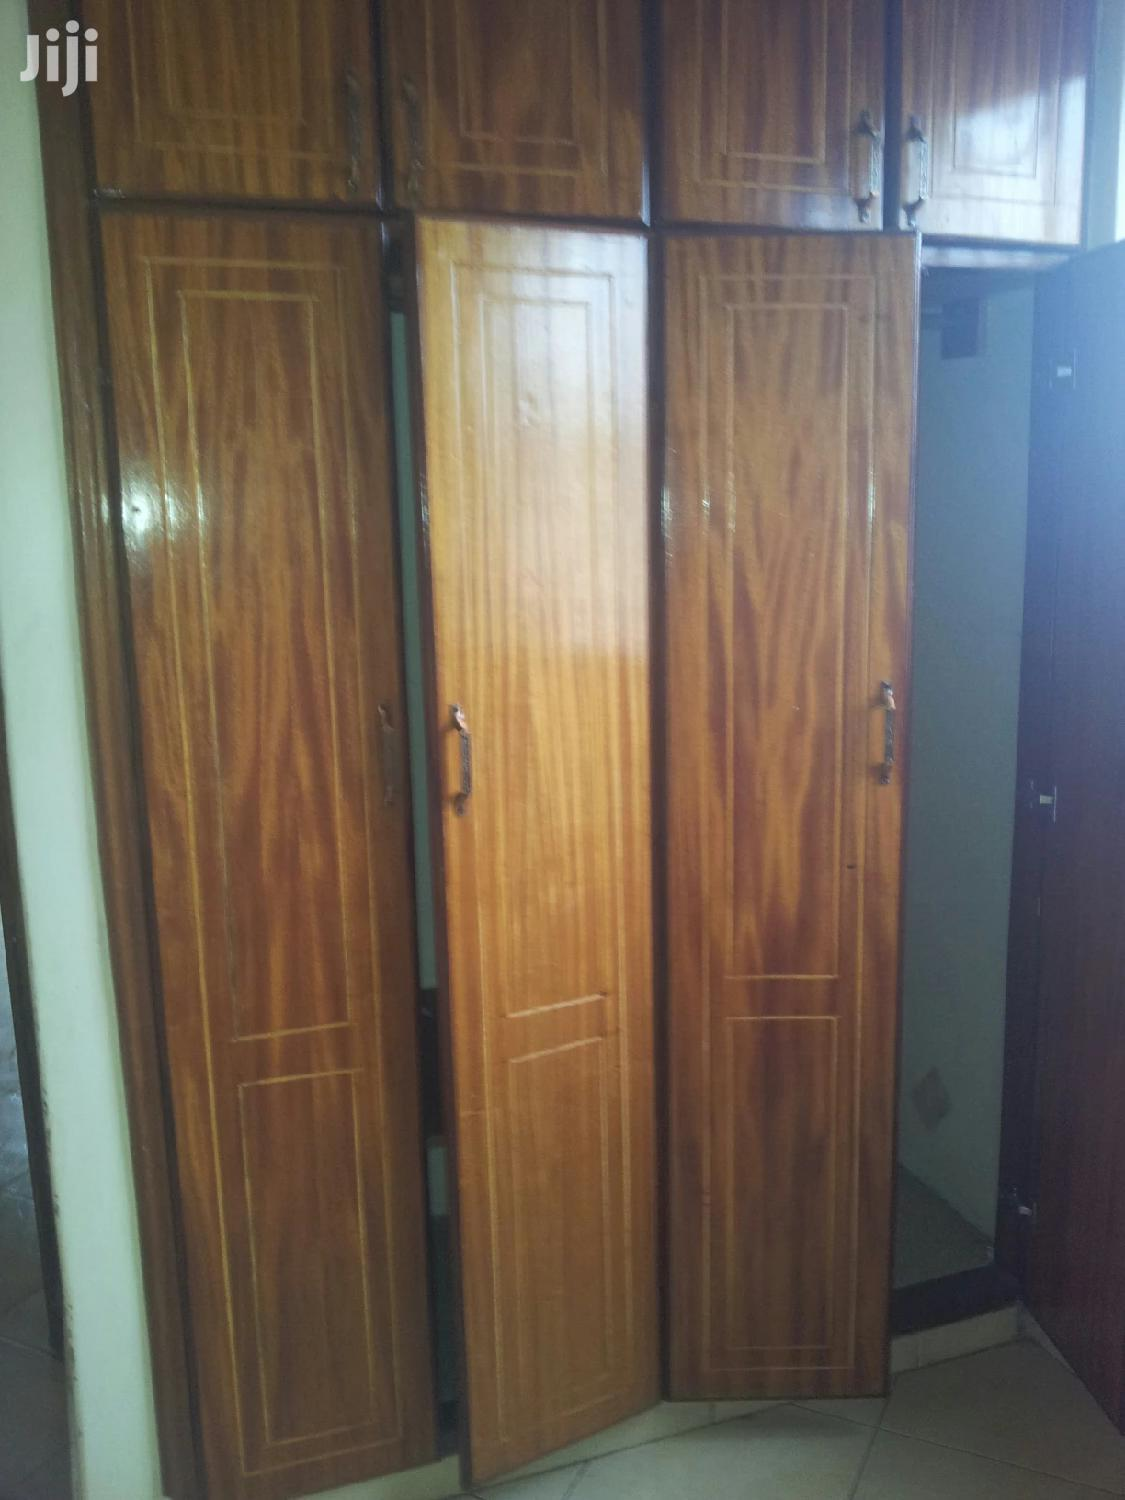 2 Bedrooms House for Rent at Kawempe Kazo   Houses & Apartments For Rent for sale in Kampala, Central Region, Uganda